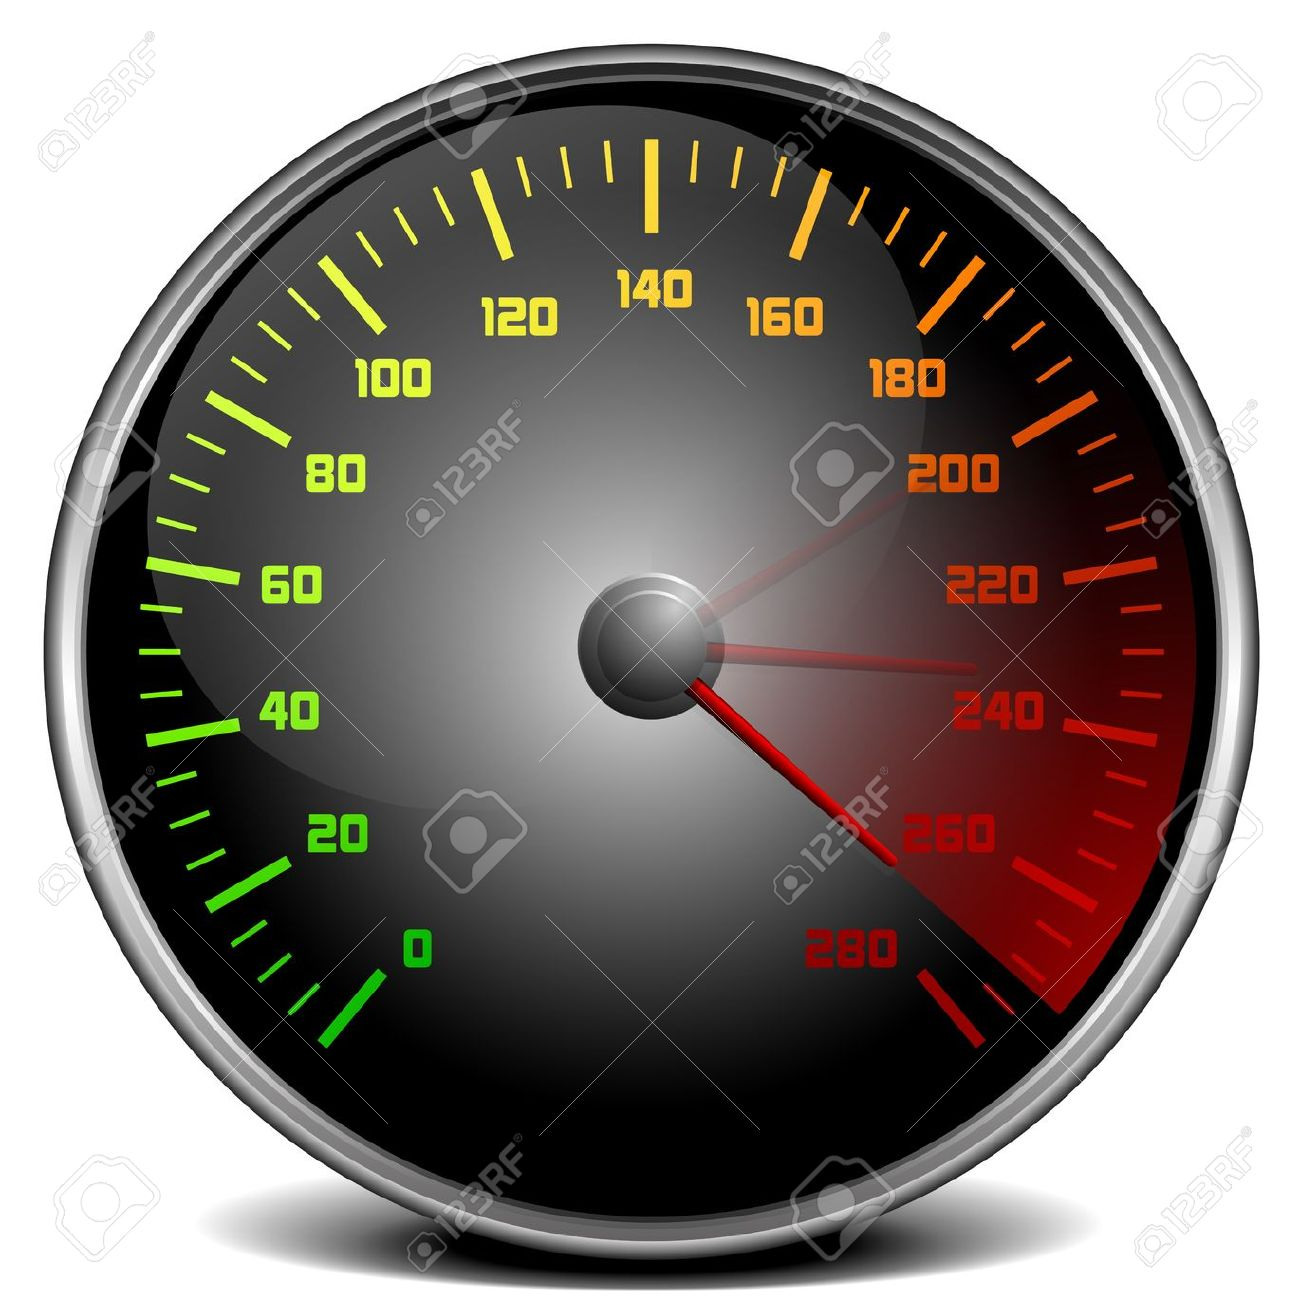 Car speedometer clipart 60 clipart freeuse download 14,499 Speedometer Cliparts, Stock Vector And Royalty Free ... clipart freeuse download